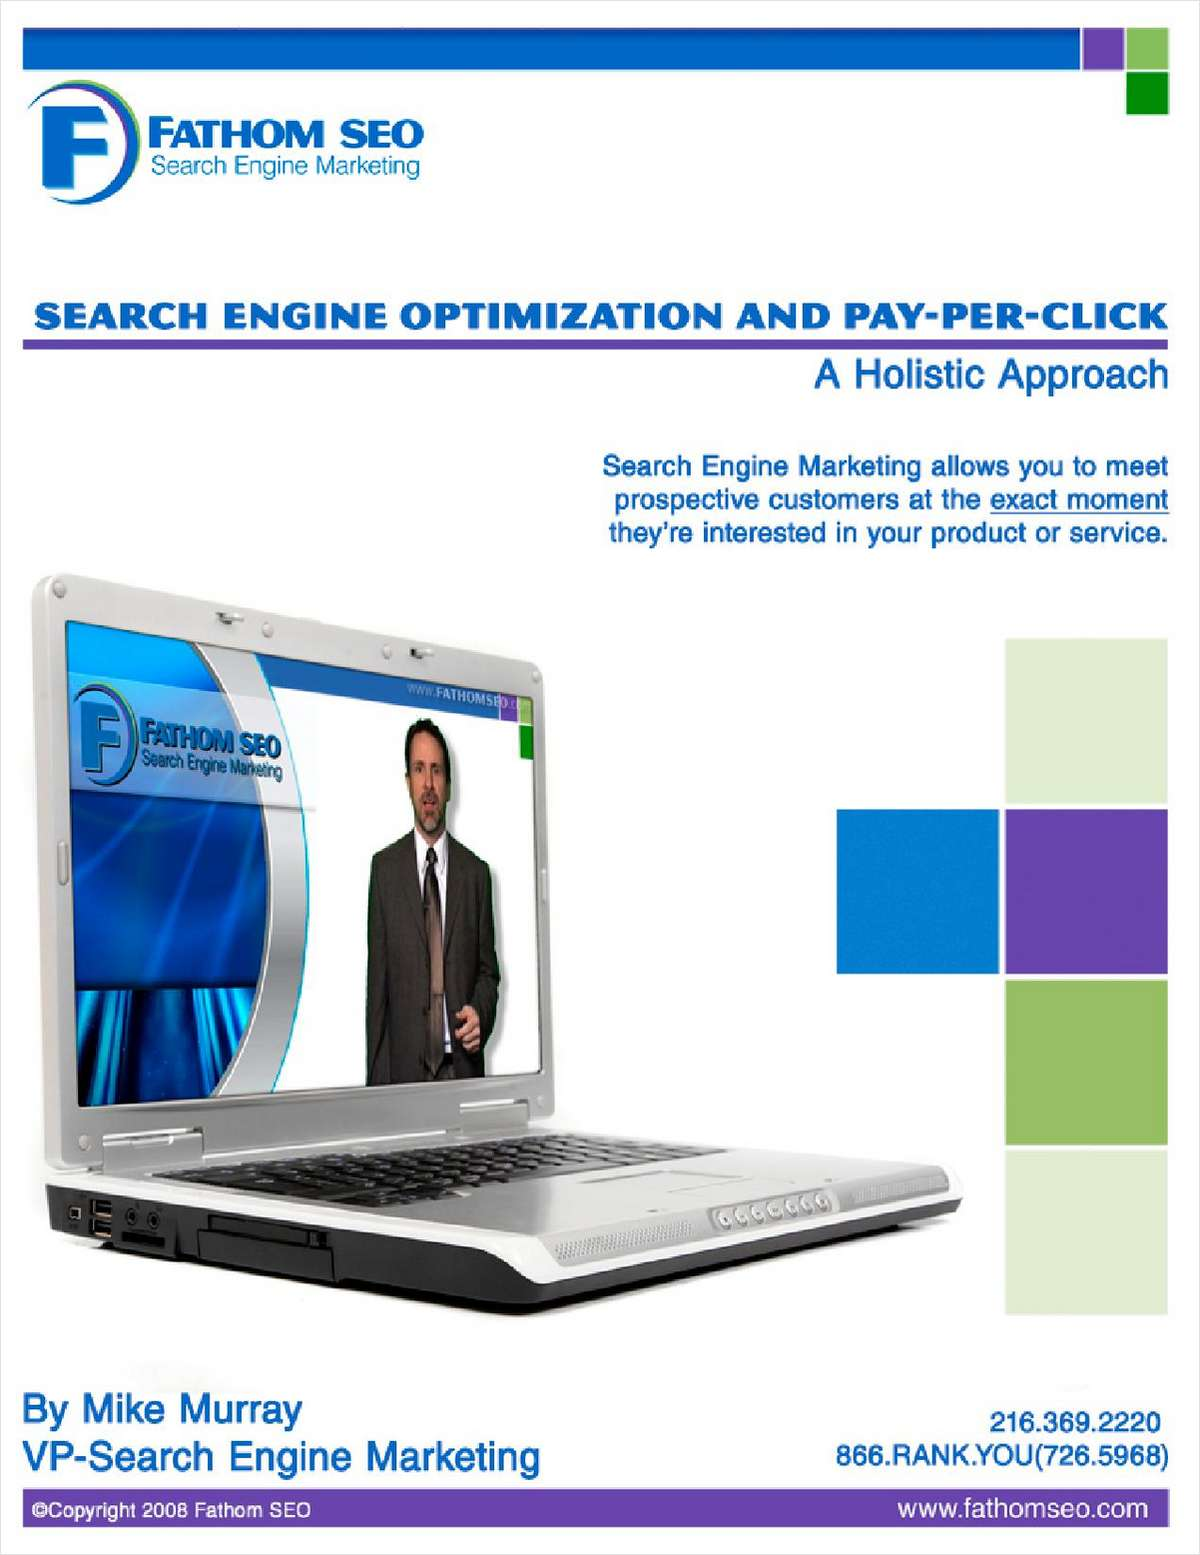 Search Engine Optimization and Pay-Per-Click: A Holistic Approach